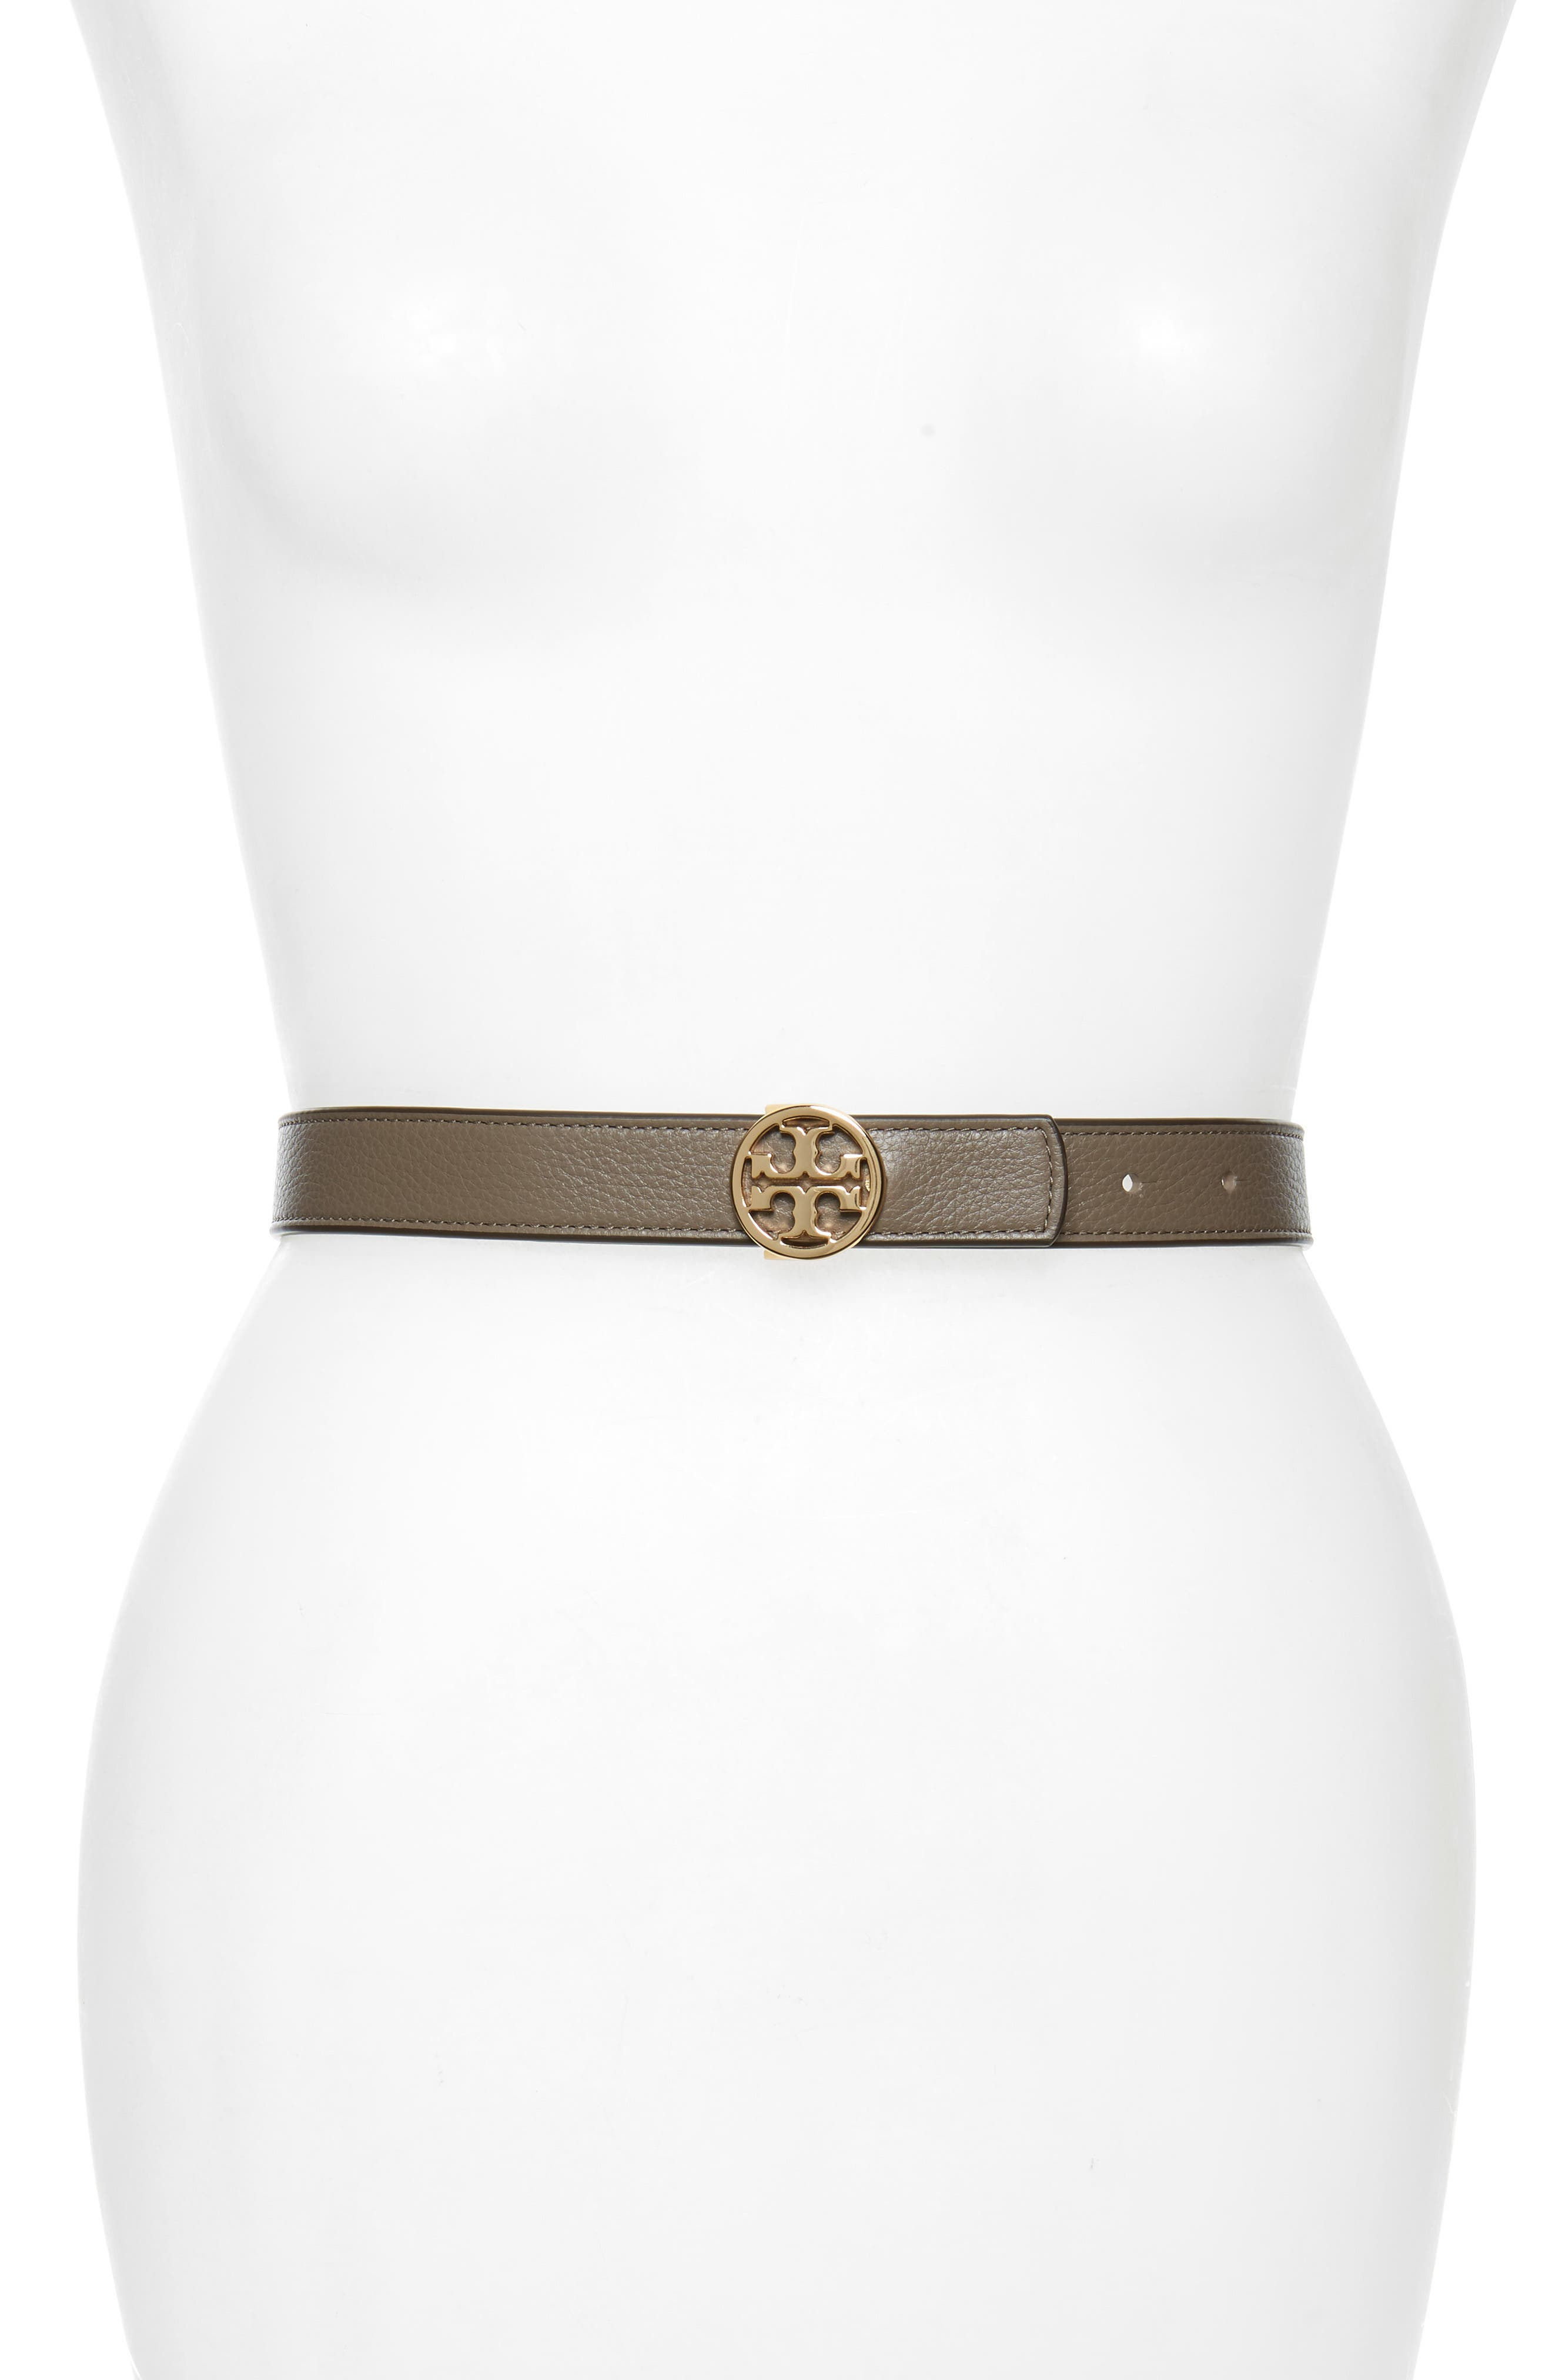 Tory Burch Reversible Logo Leather Belt, Silver Maple / Claret